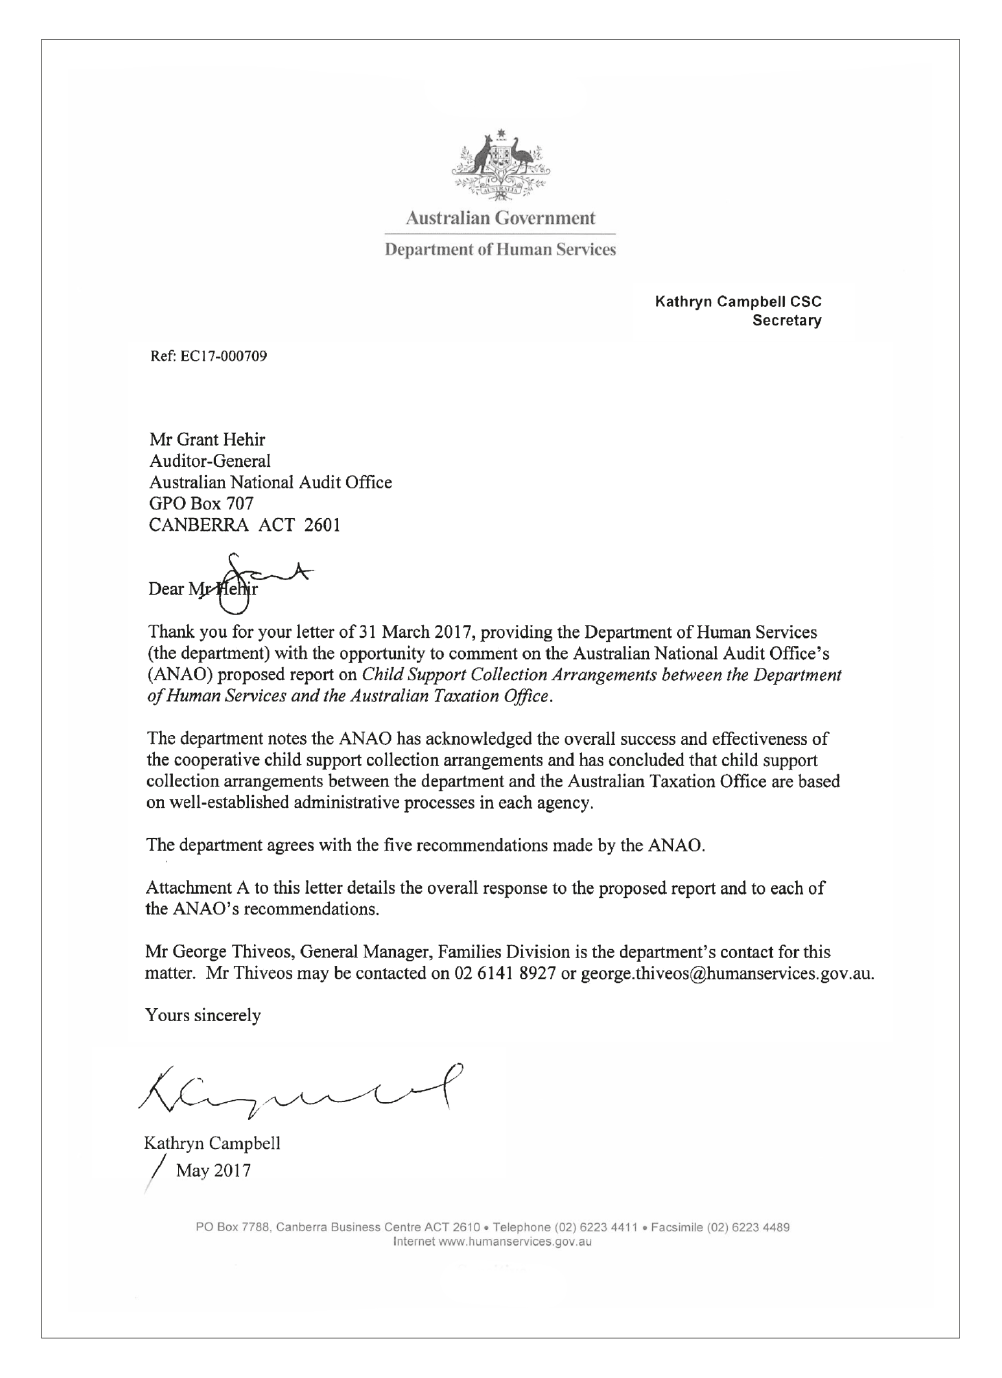 Human Services response letter